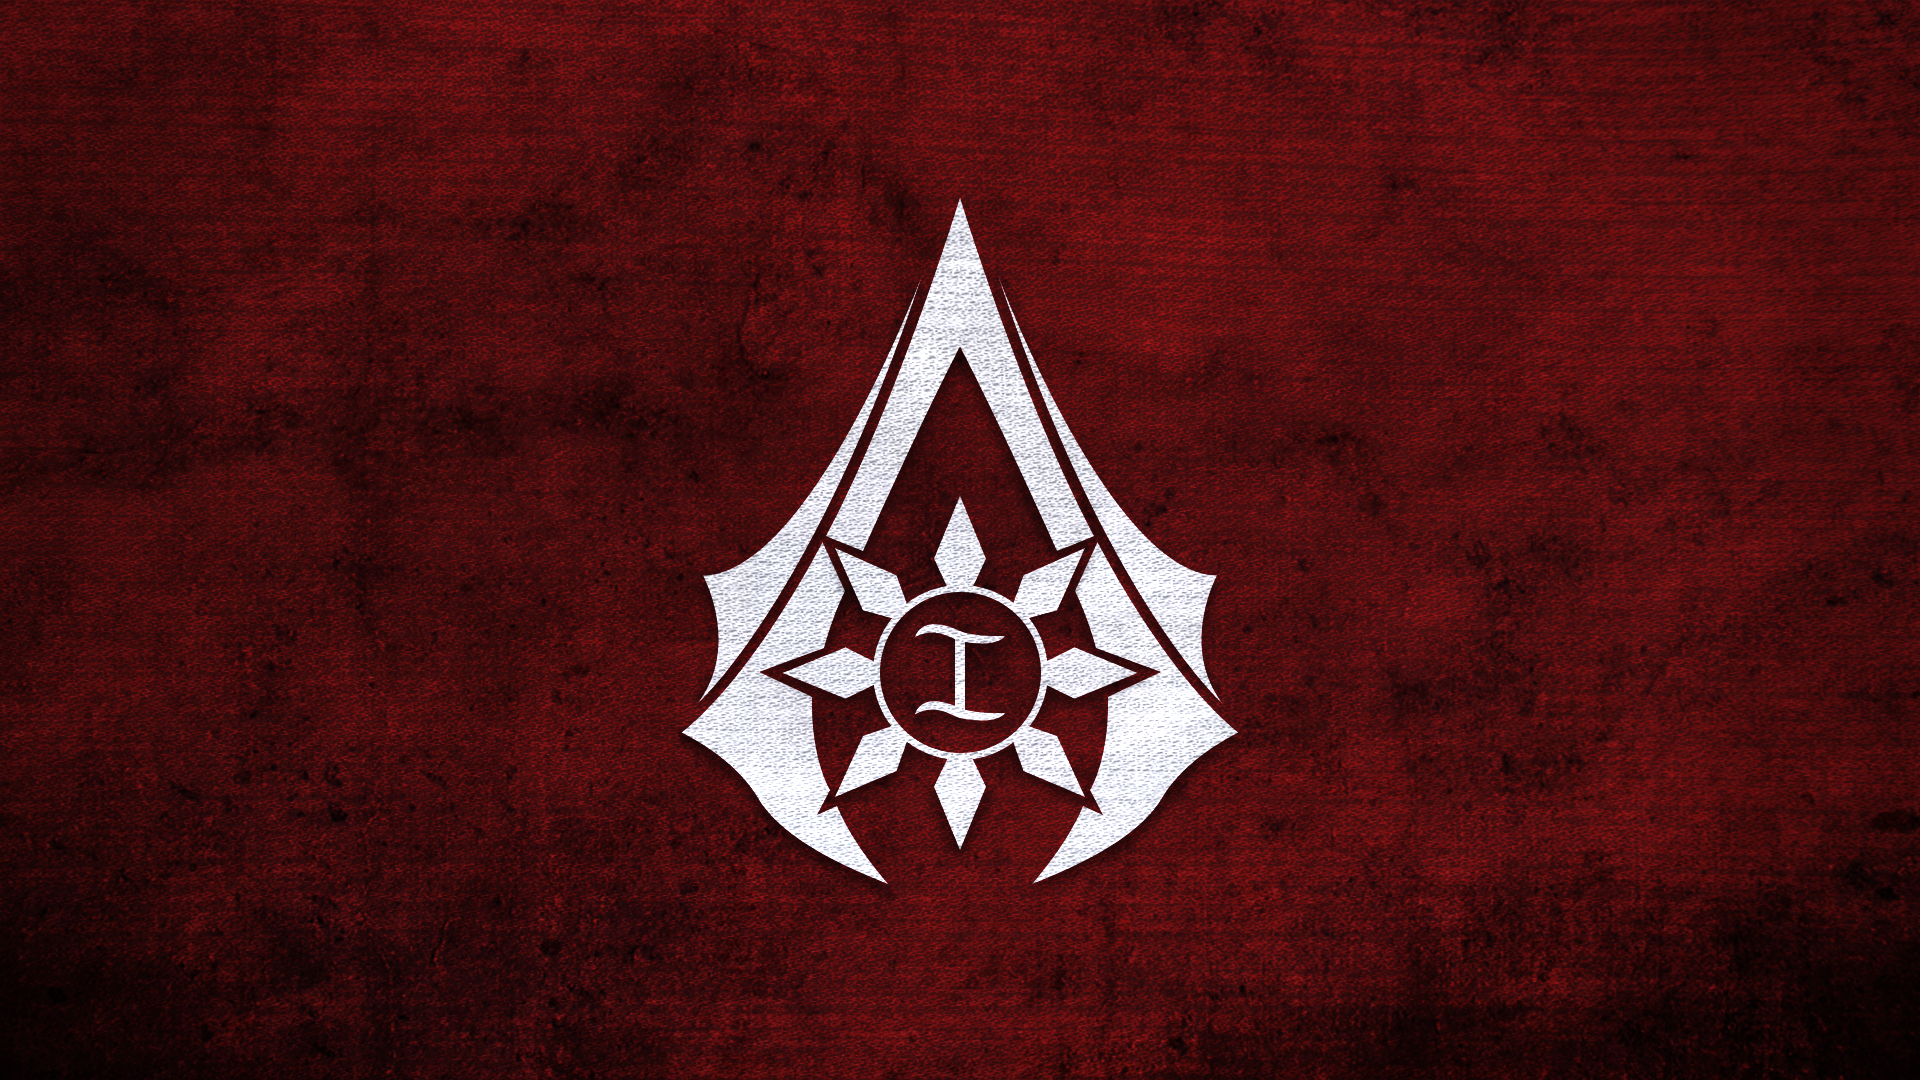 Assassin S Creed Katipunan Flag By Iamthenonamer On Deviantart